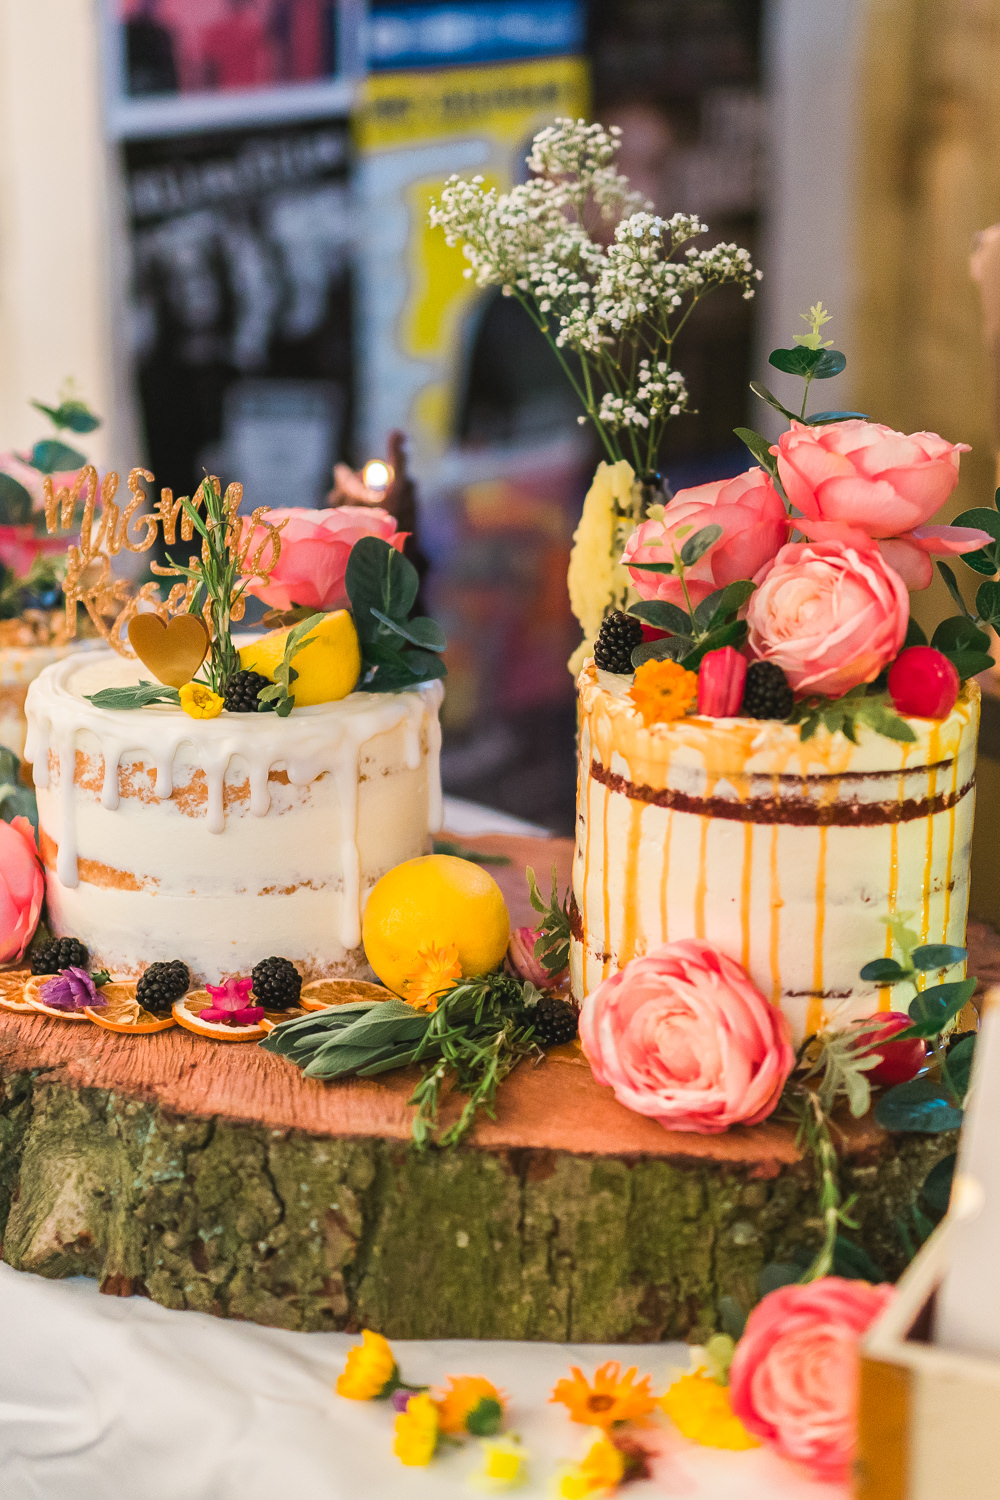 Cakes Wood Slice Semi Naked Drip David Austin Roses Berries Macarons Fruit Space Hull Warehouse Wedding M&G Photographic